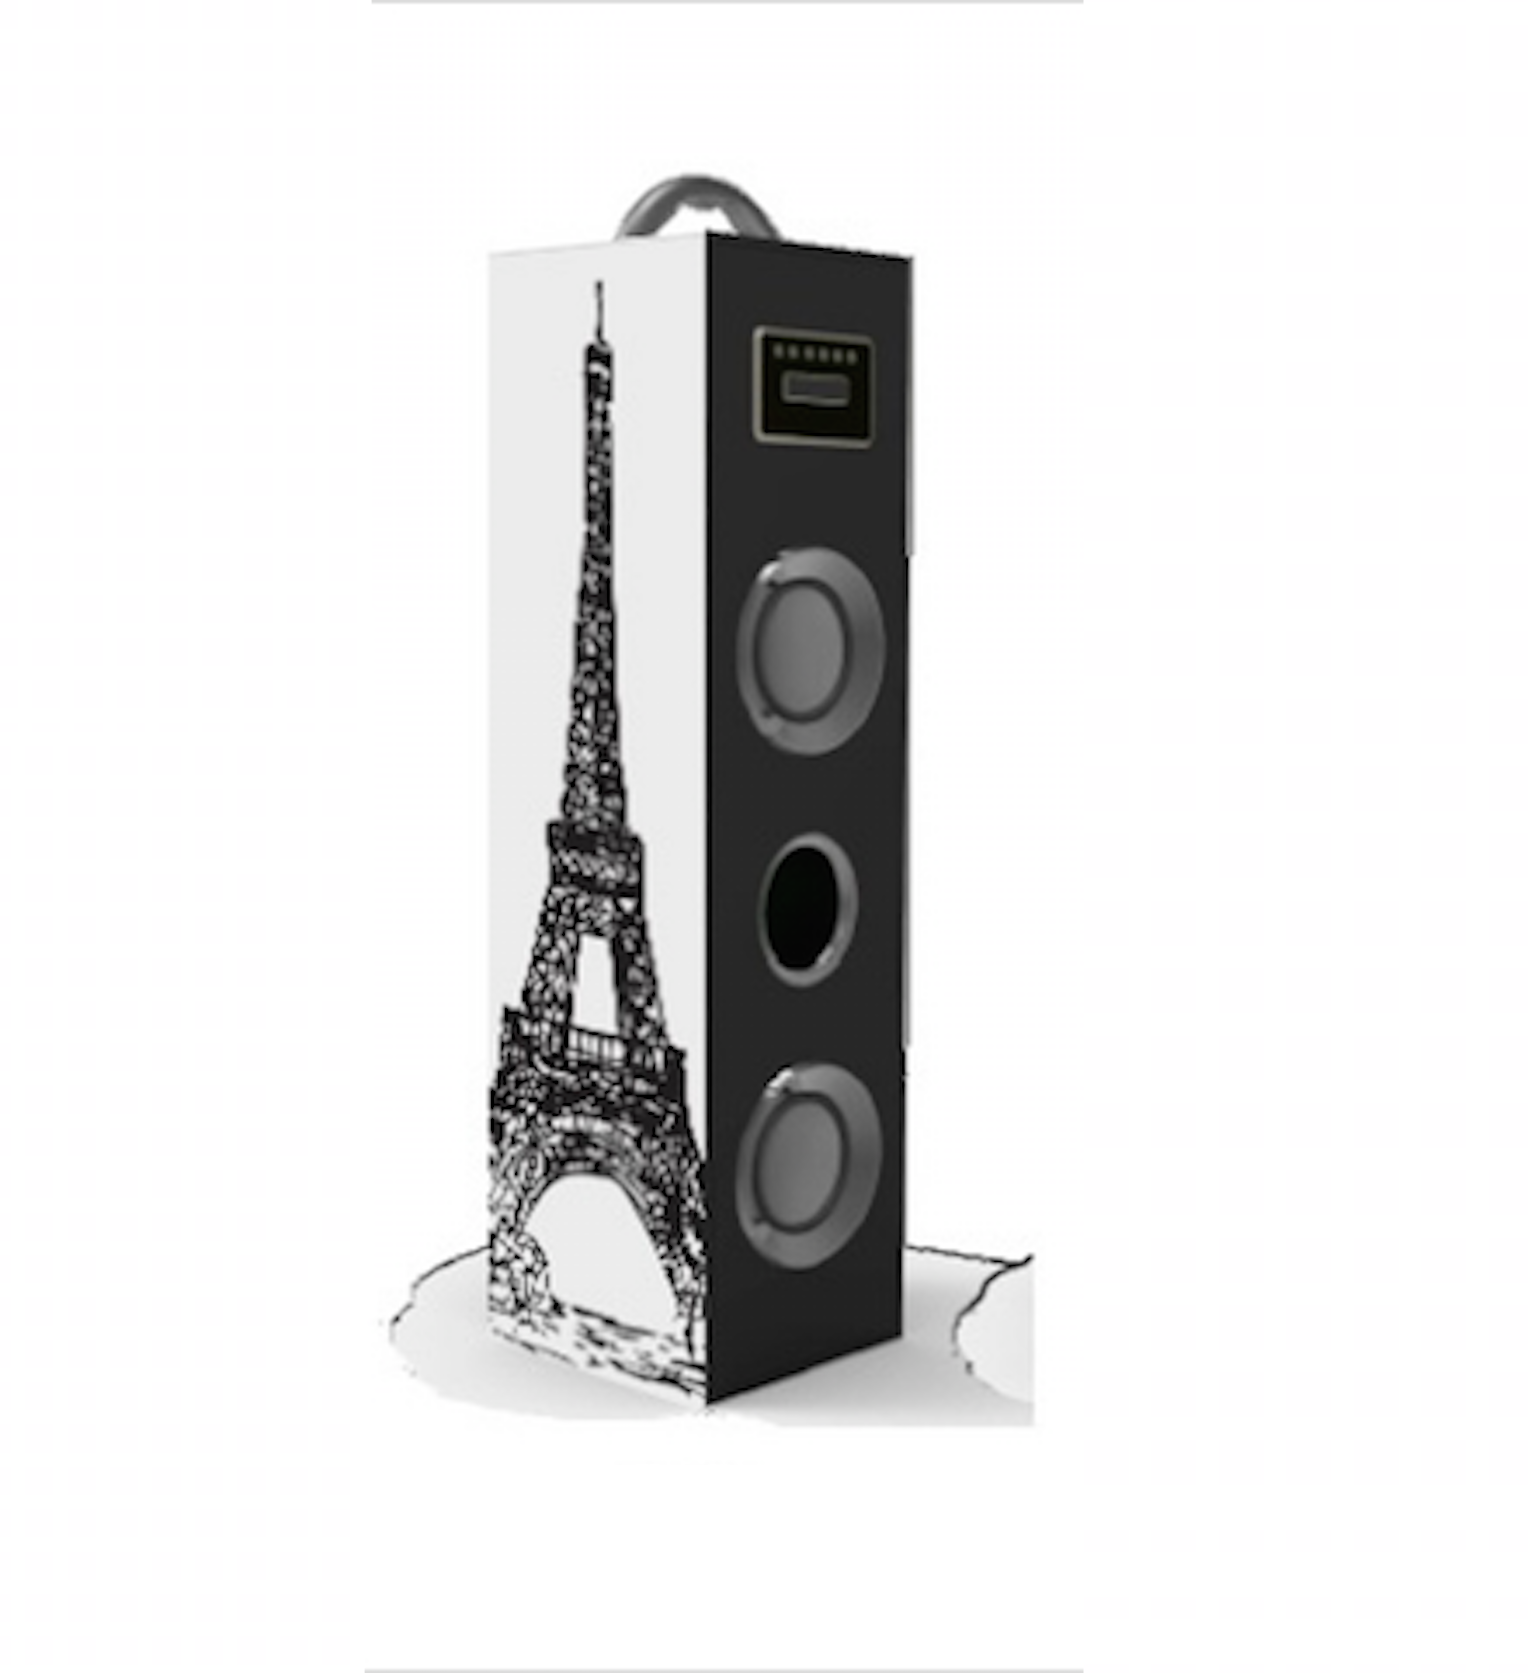 CT-8238 MP3 Pemutaran USB SD Slot Kartu MDF Kayu Speaker 5 W X 2 Portable Sound Kotak Kayu Tower Speaker